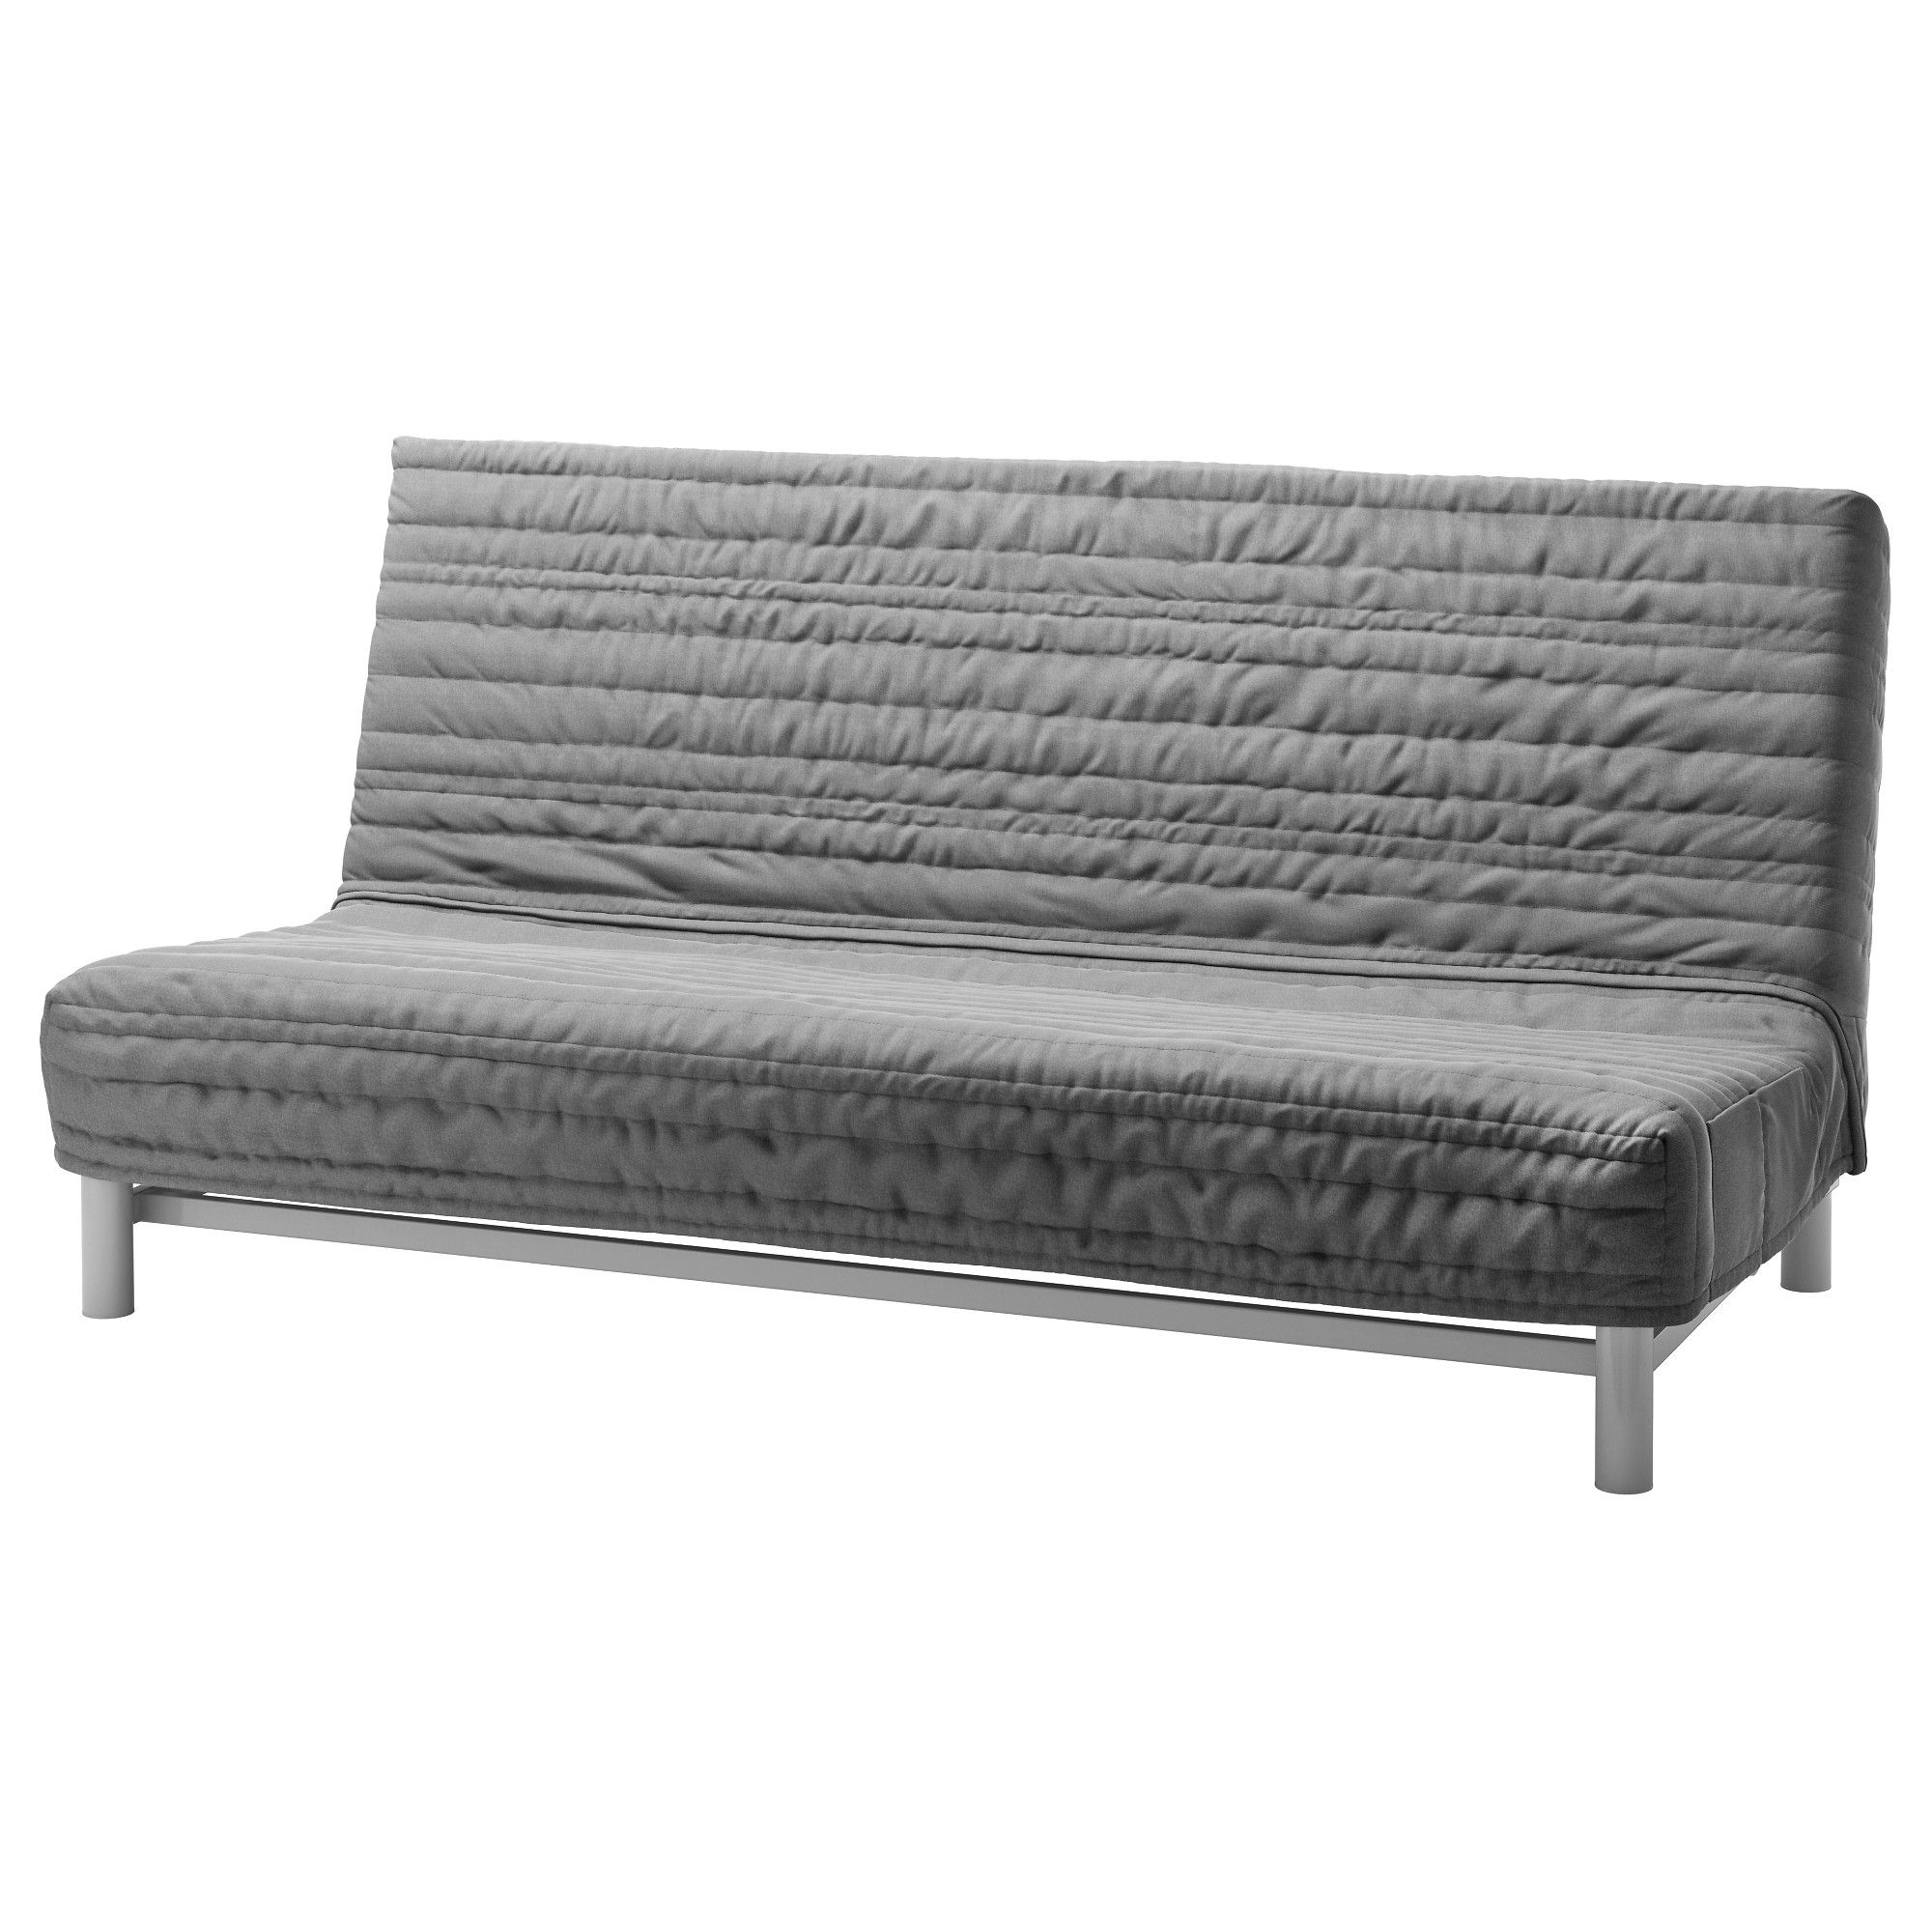 IKEA BEDDINGE L–V…S Sofa bed Knisa light gray Extra covers